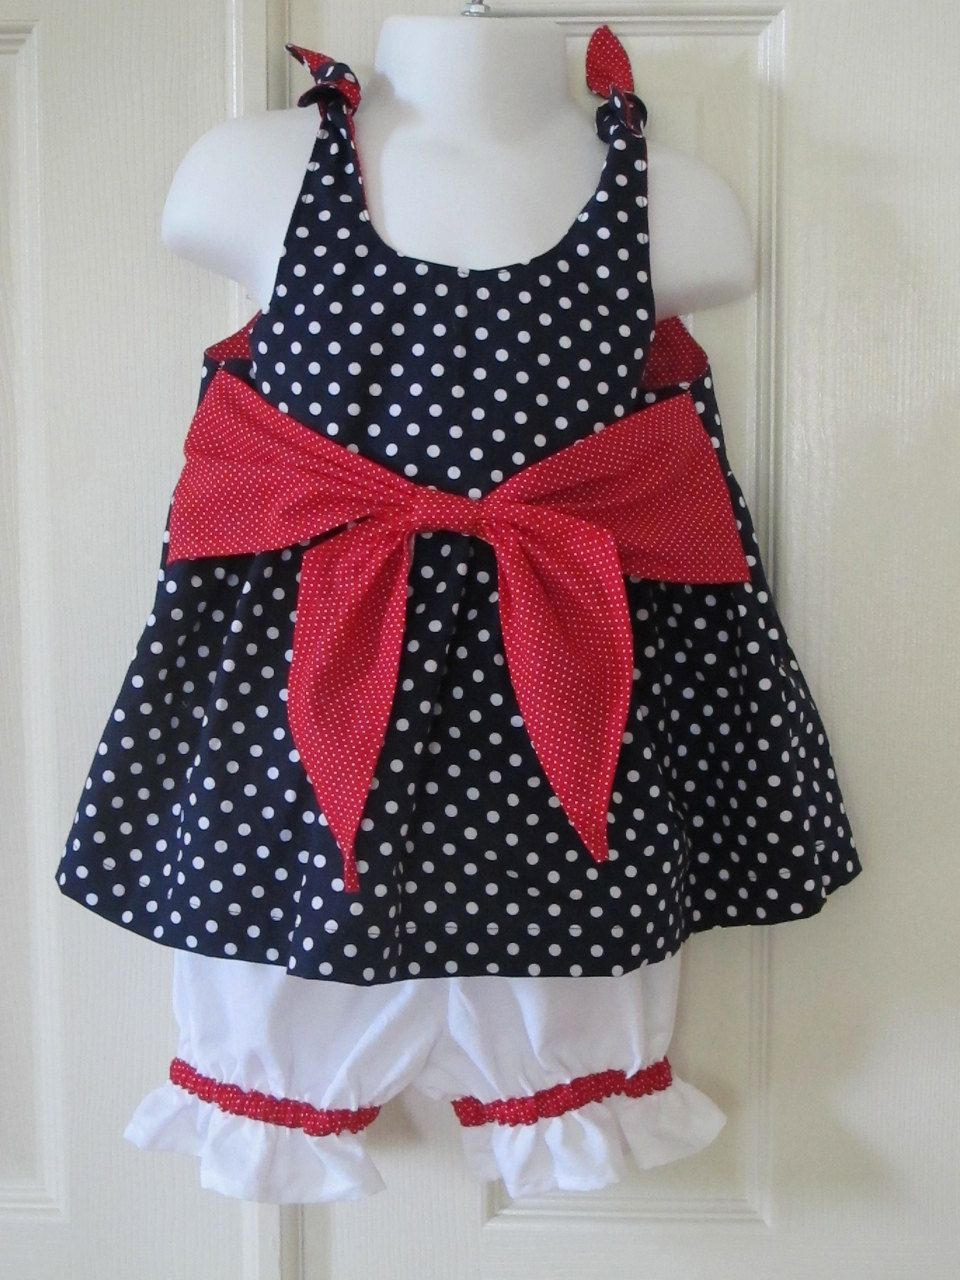 Sewing Patterns For Cute Baby Clothes 8 00 Via Etsy